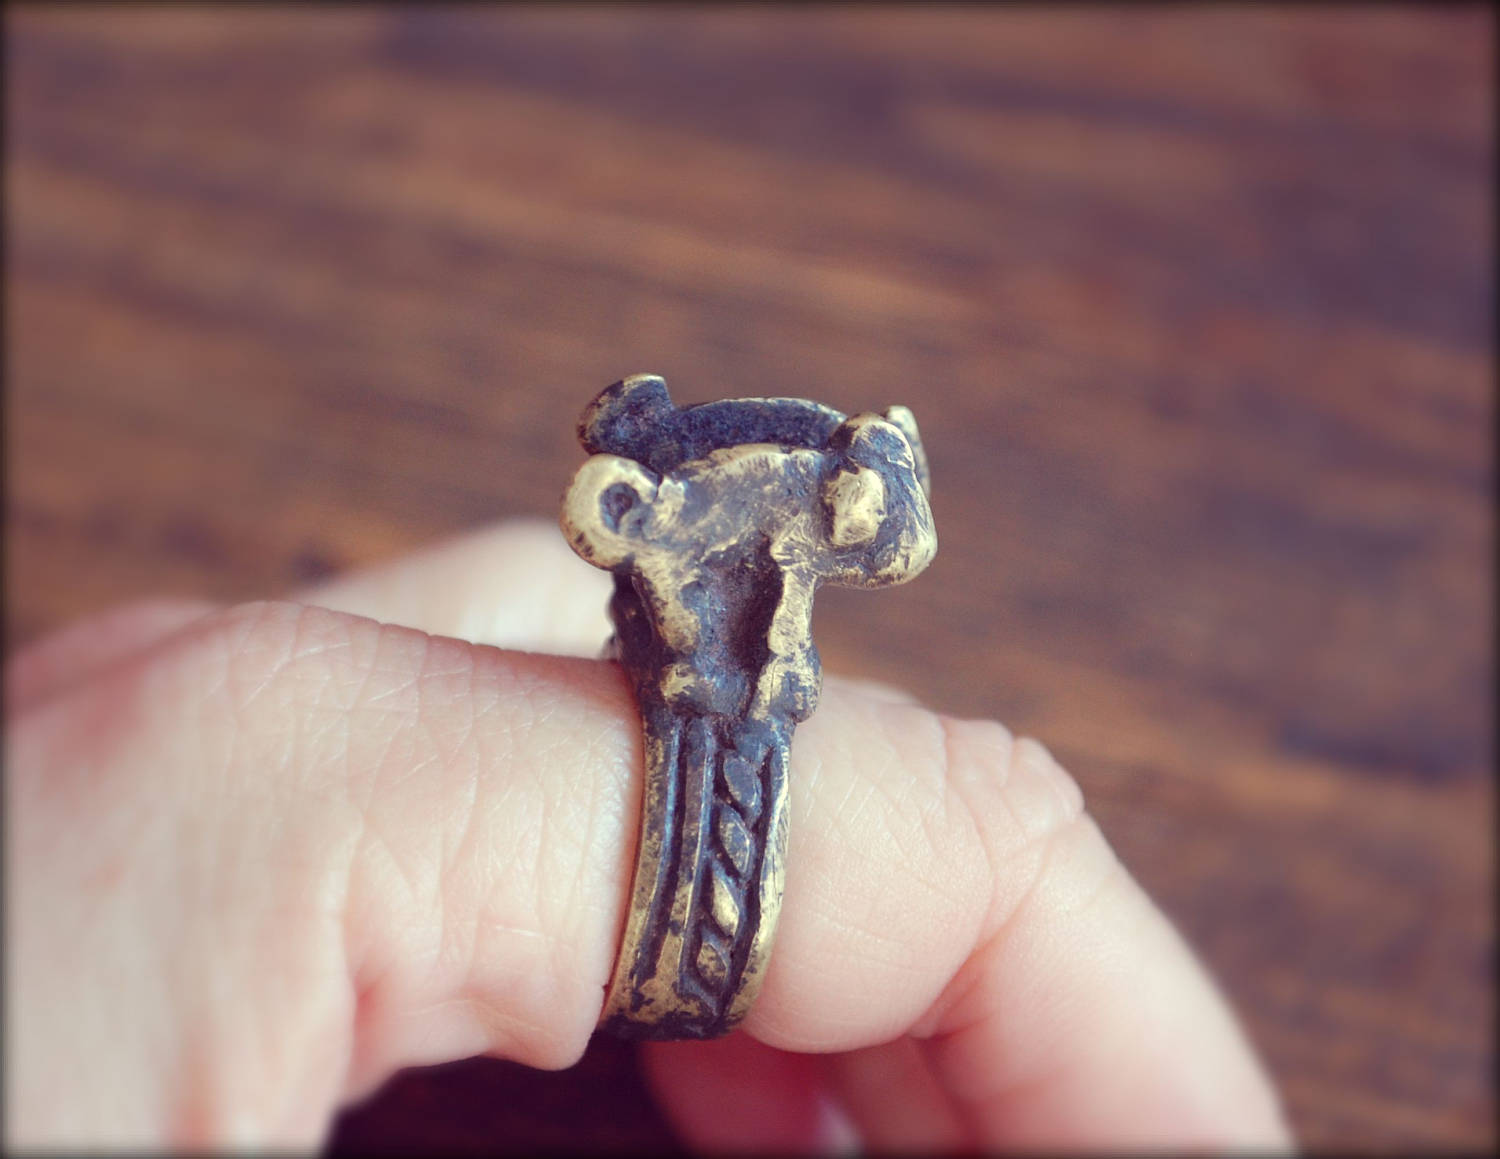 Old Lobi Chameleon Brass Ring - Size 6.5 - Double Chameleon Ring